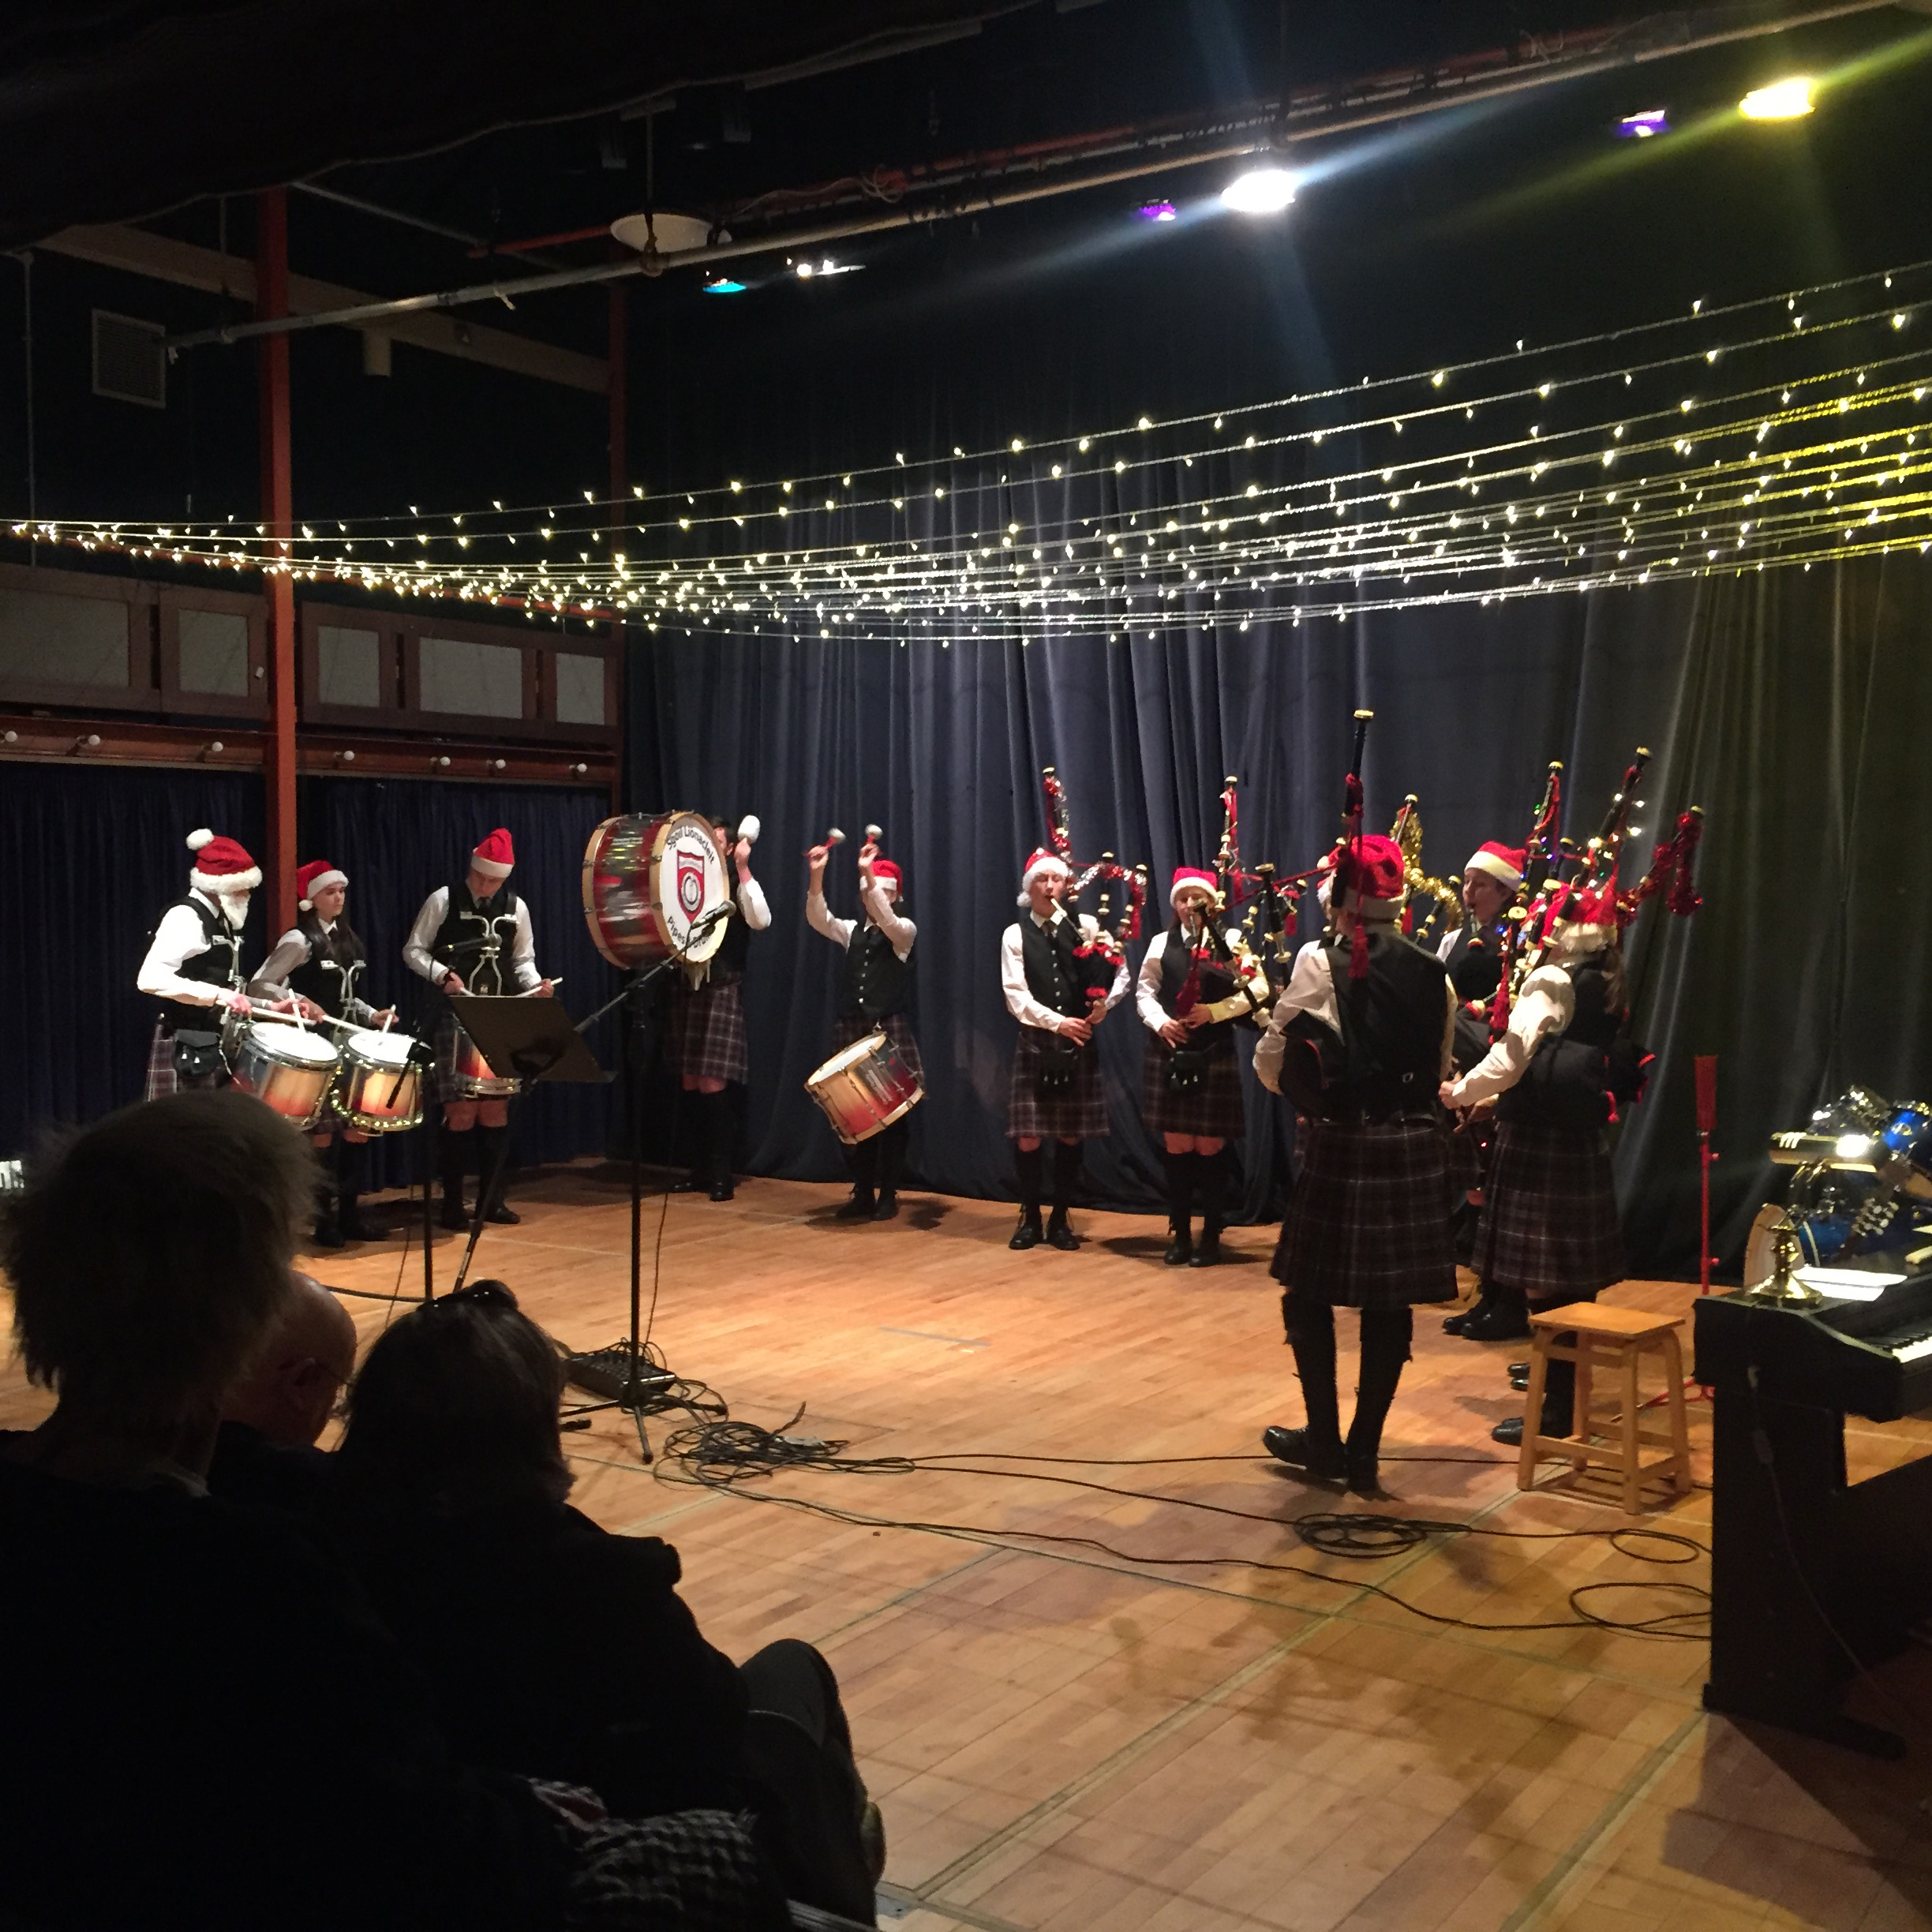 This image is of the school christmas concert held on Monday 16th December.